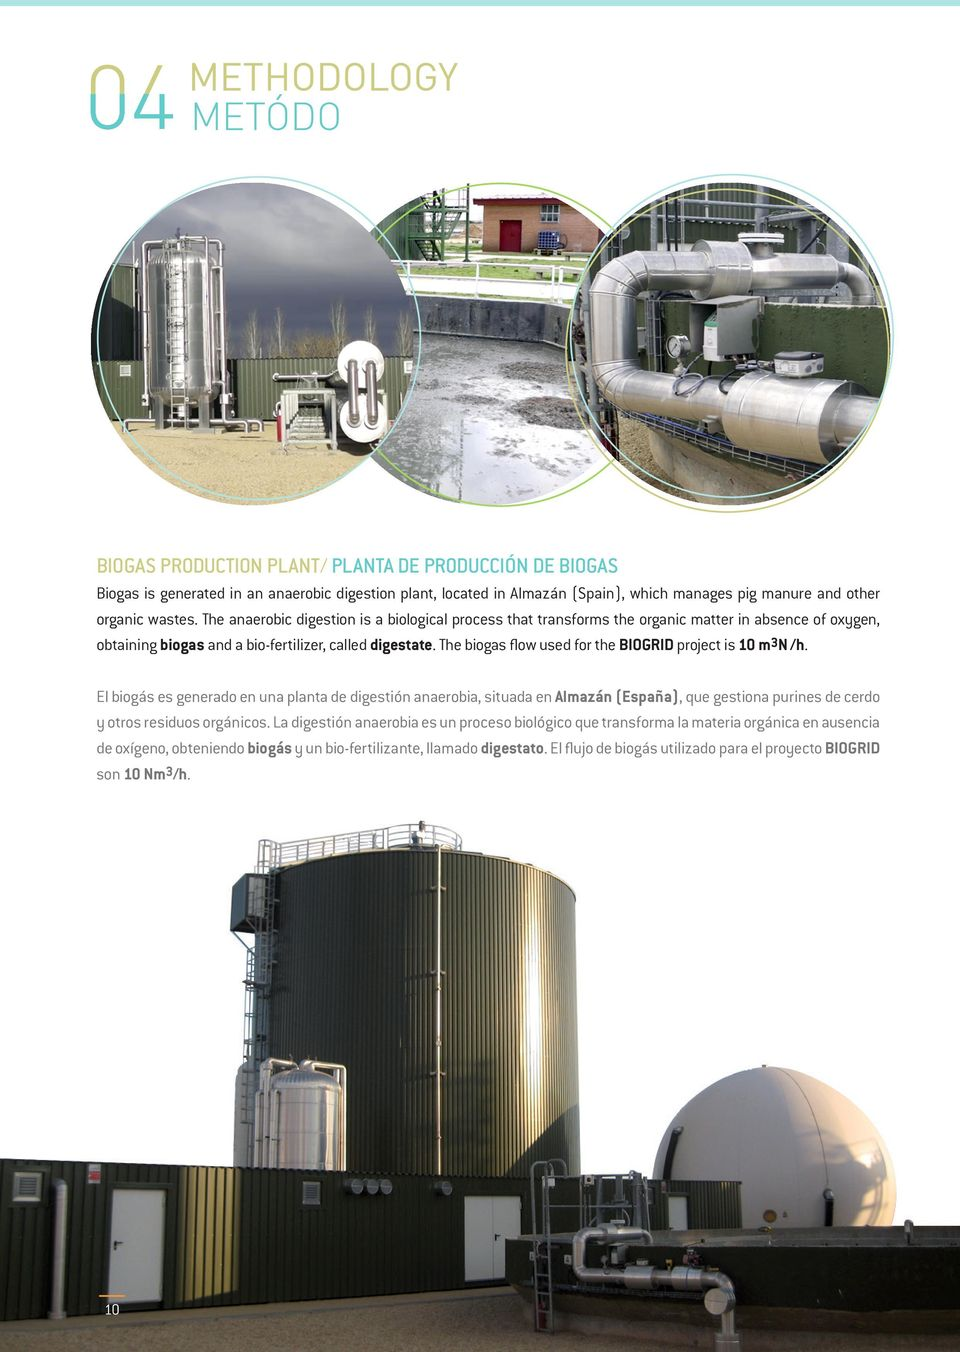 The biogas flow used for the BIOGRID project is 10 m3n /h.